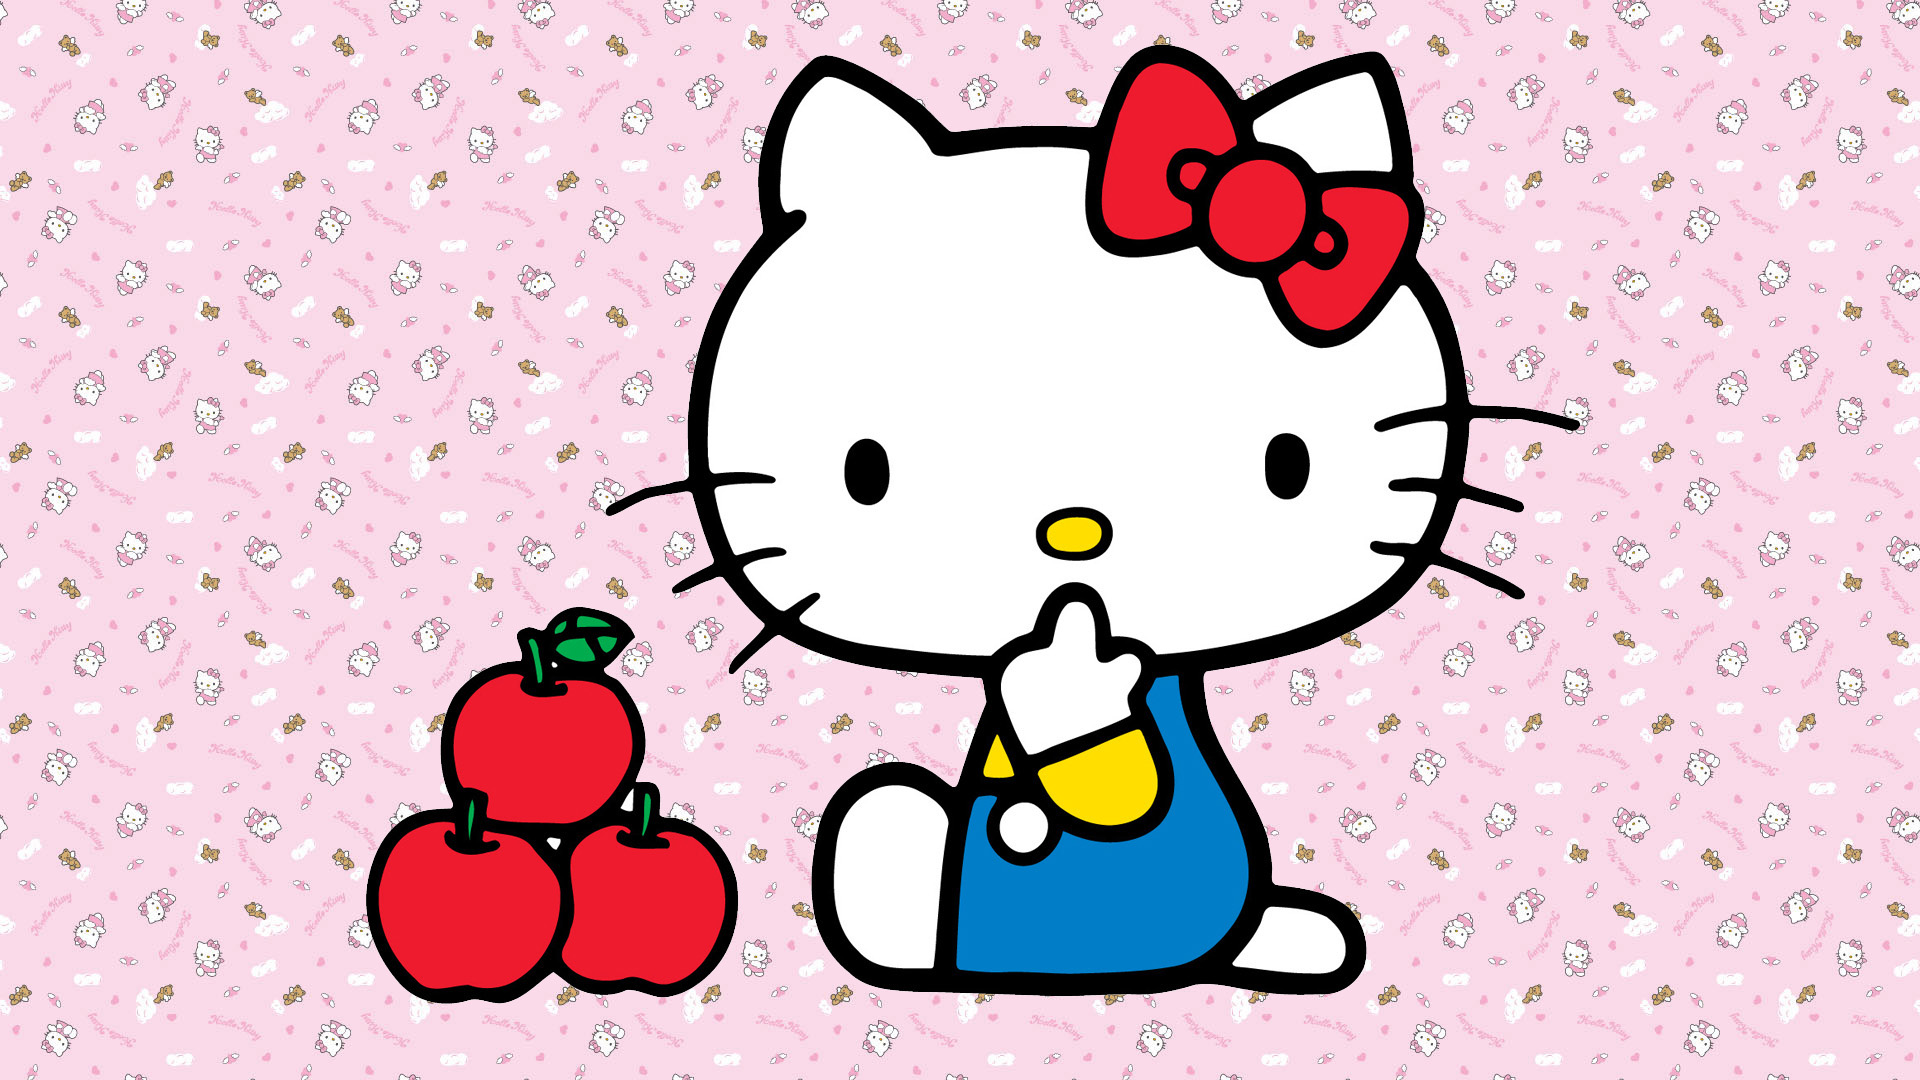 Download hello kitty wallpaper full hd wallpapers 1920x1080 voltagebd Gallery